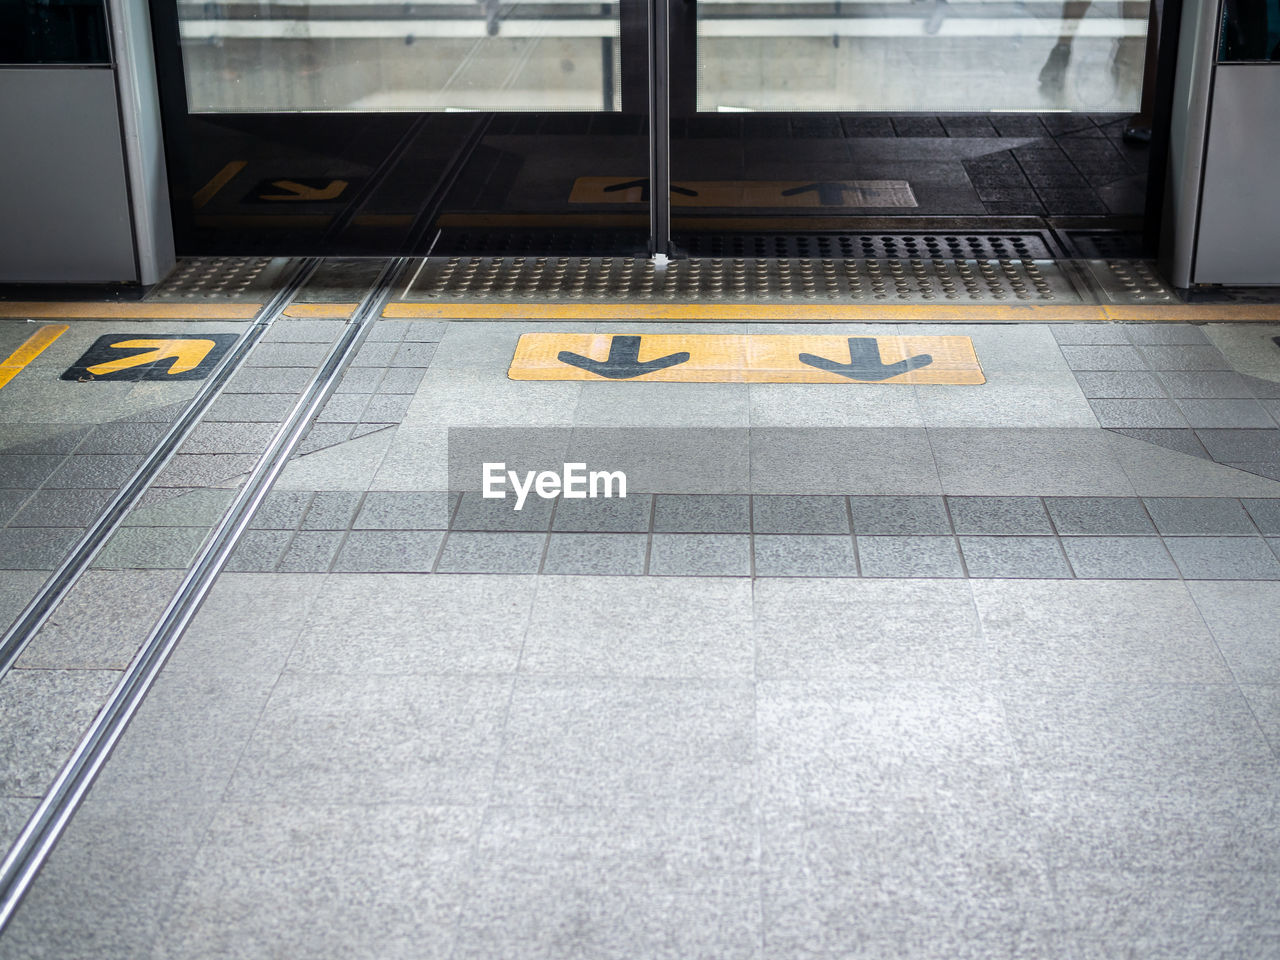 communication, indoors, number, flooring, text, sign, transportation, tiled floor, no people, entrance, door, tile, day, high angle view, public transportation, mode of transportation, absence, yellow, western script, station